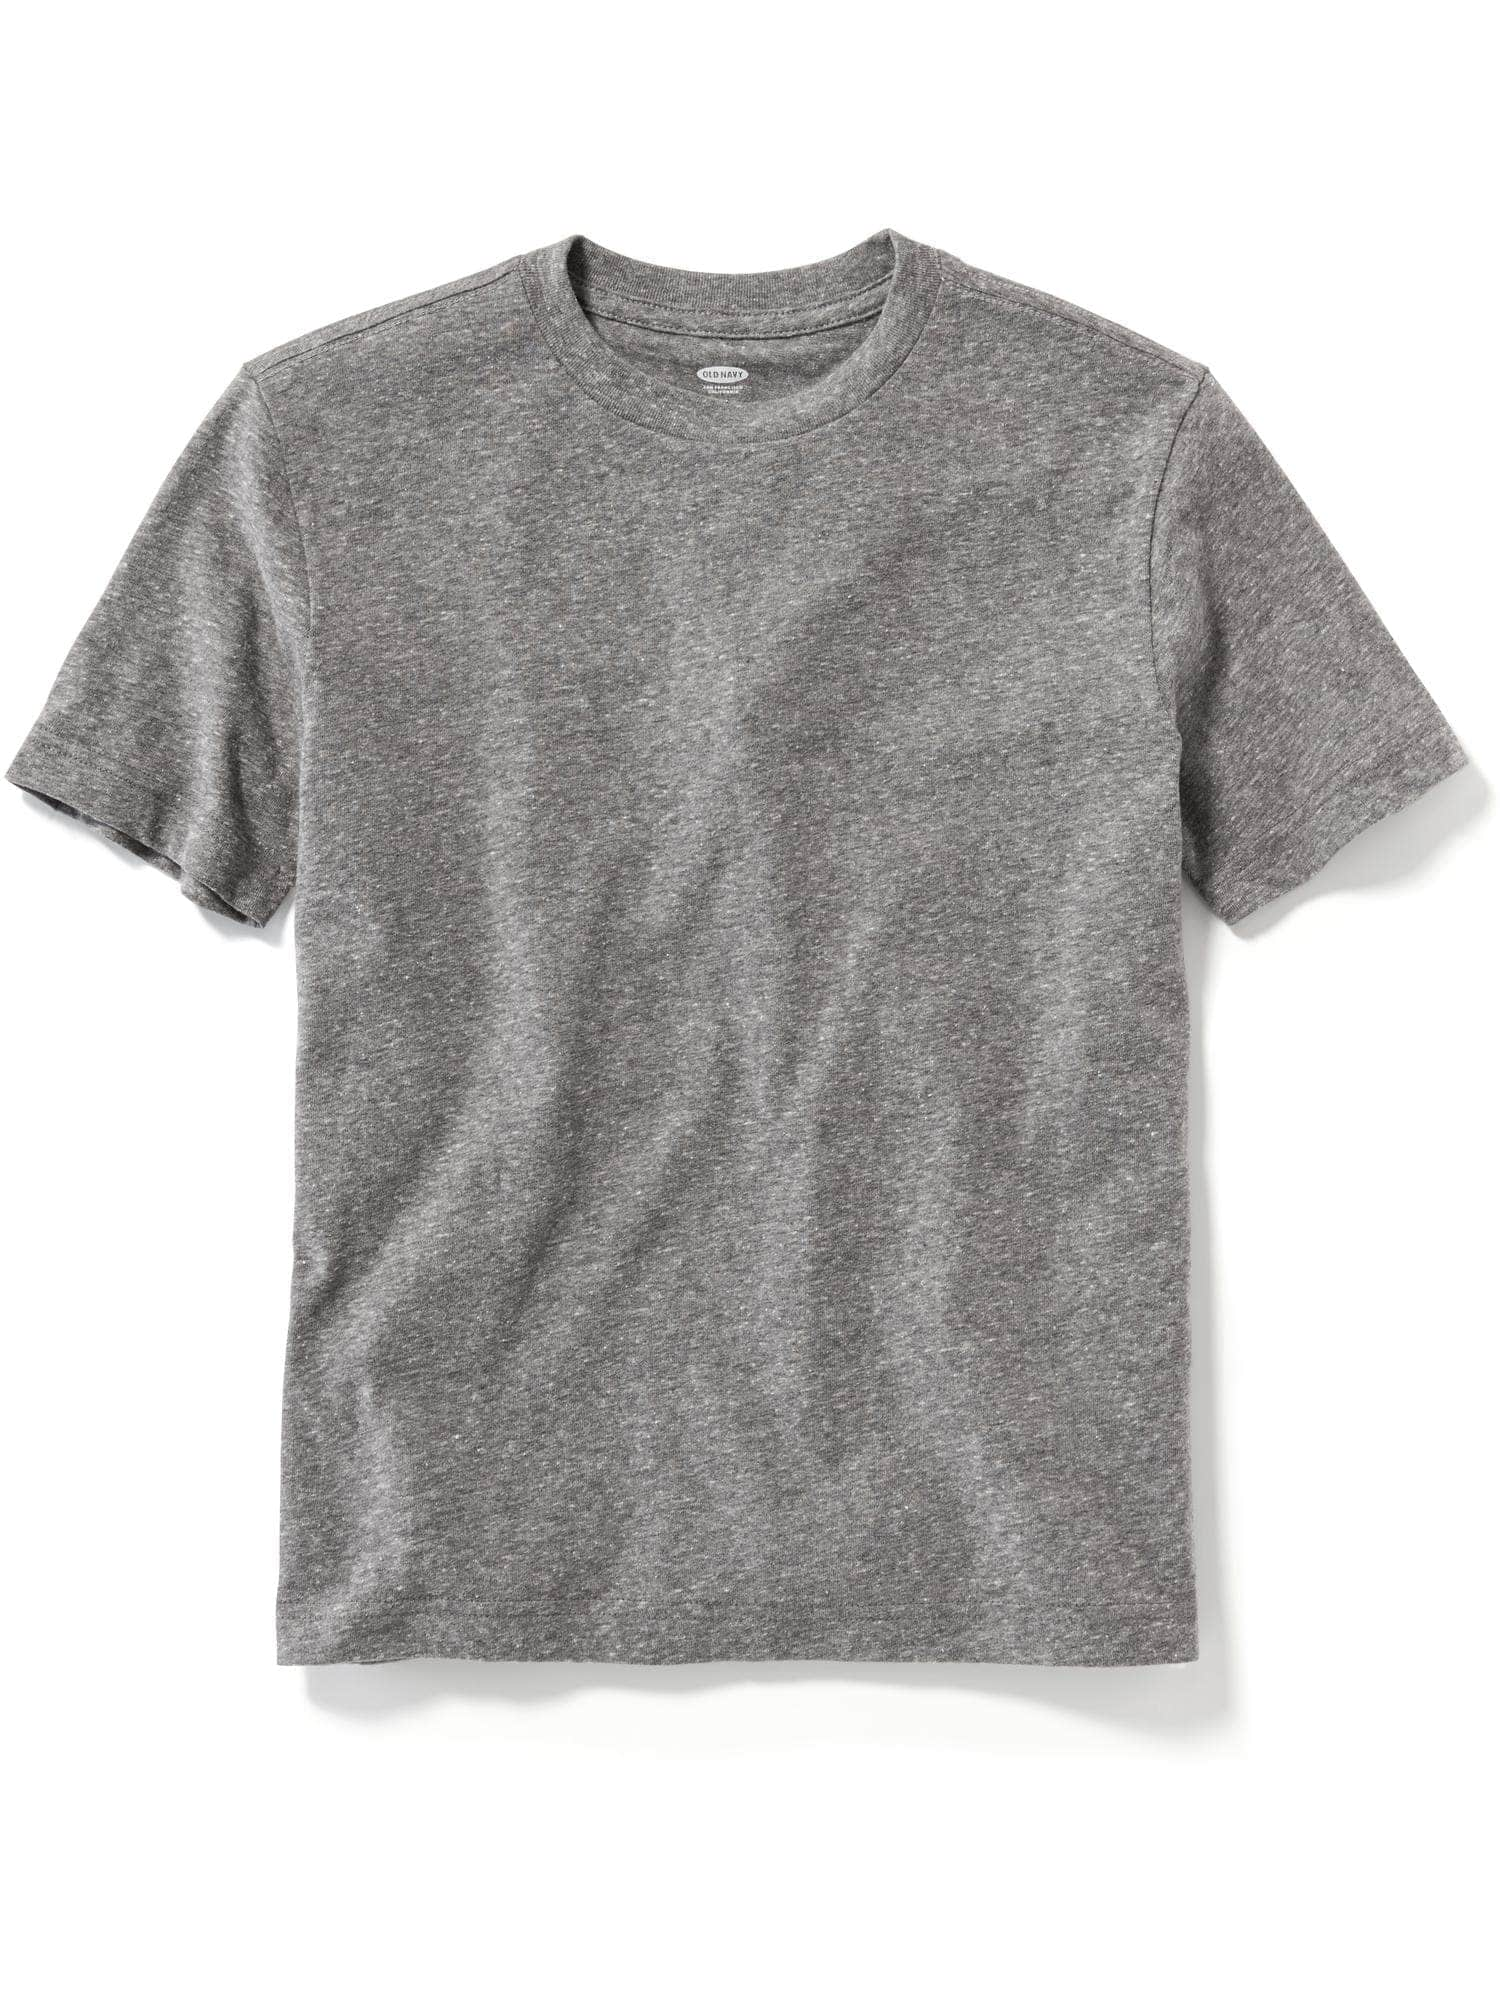 Old Navy: Boys' Softest Heathered Tee or Women's Scarf $2.80   Girls' Graphic Crew Neck Tee $3.31, Toddler Girls' Rugby Dress $4.88 + FS on $50+